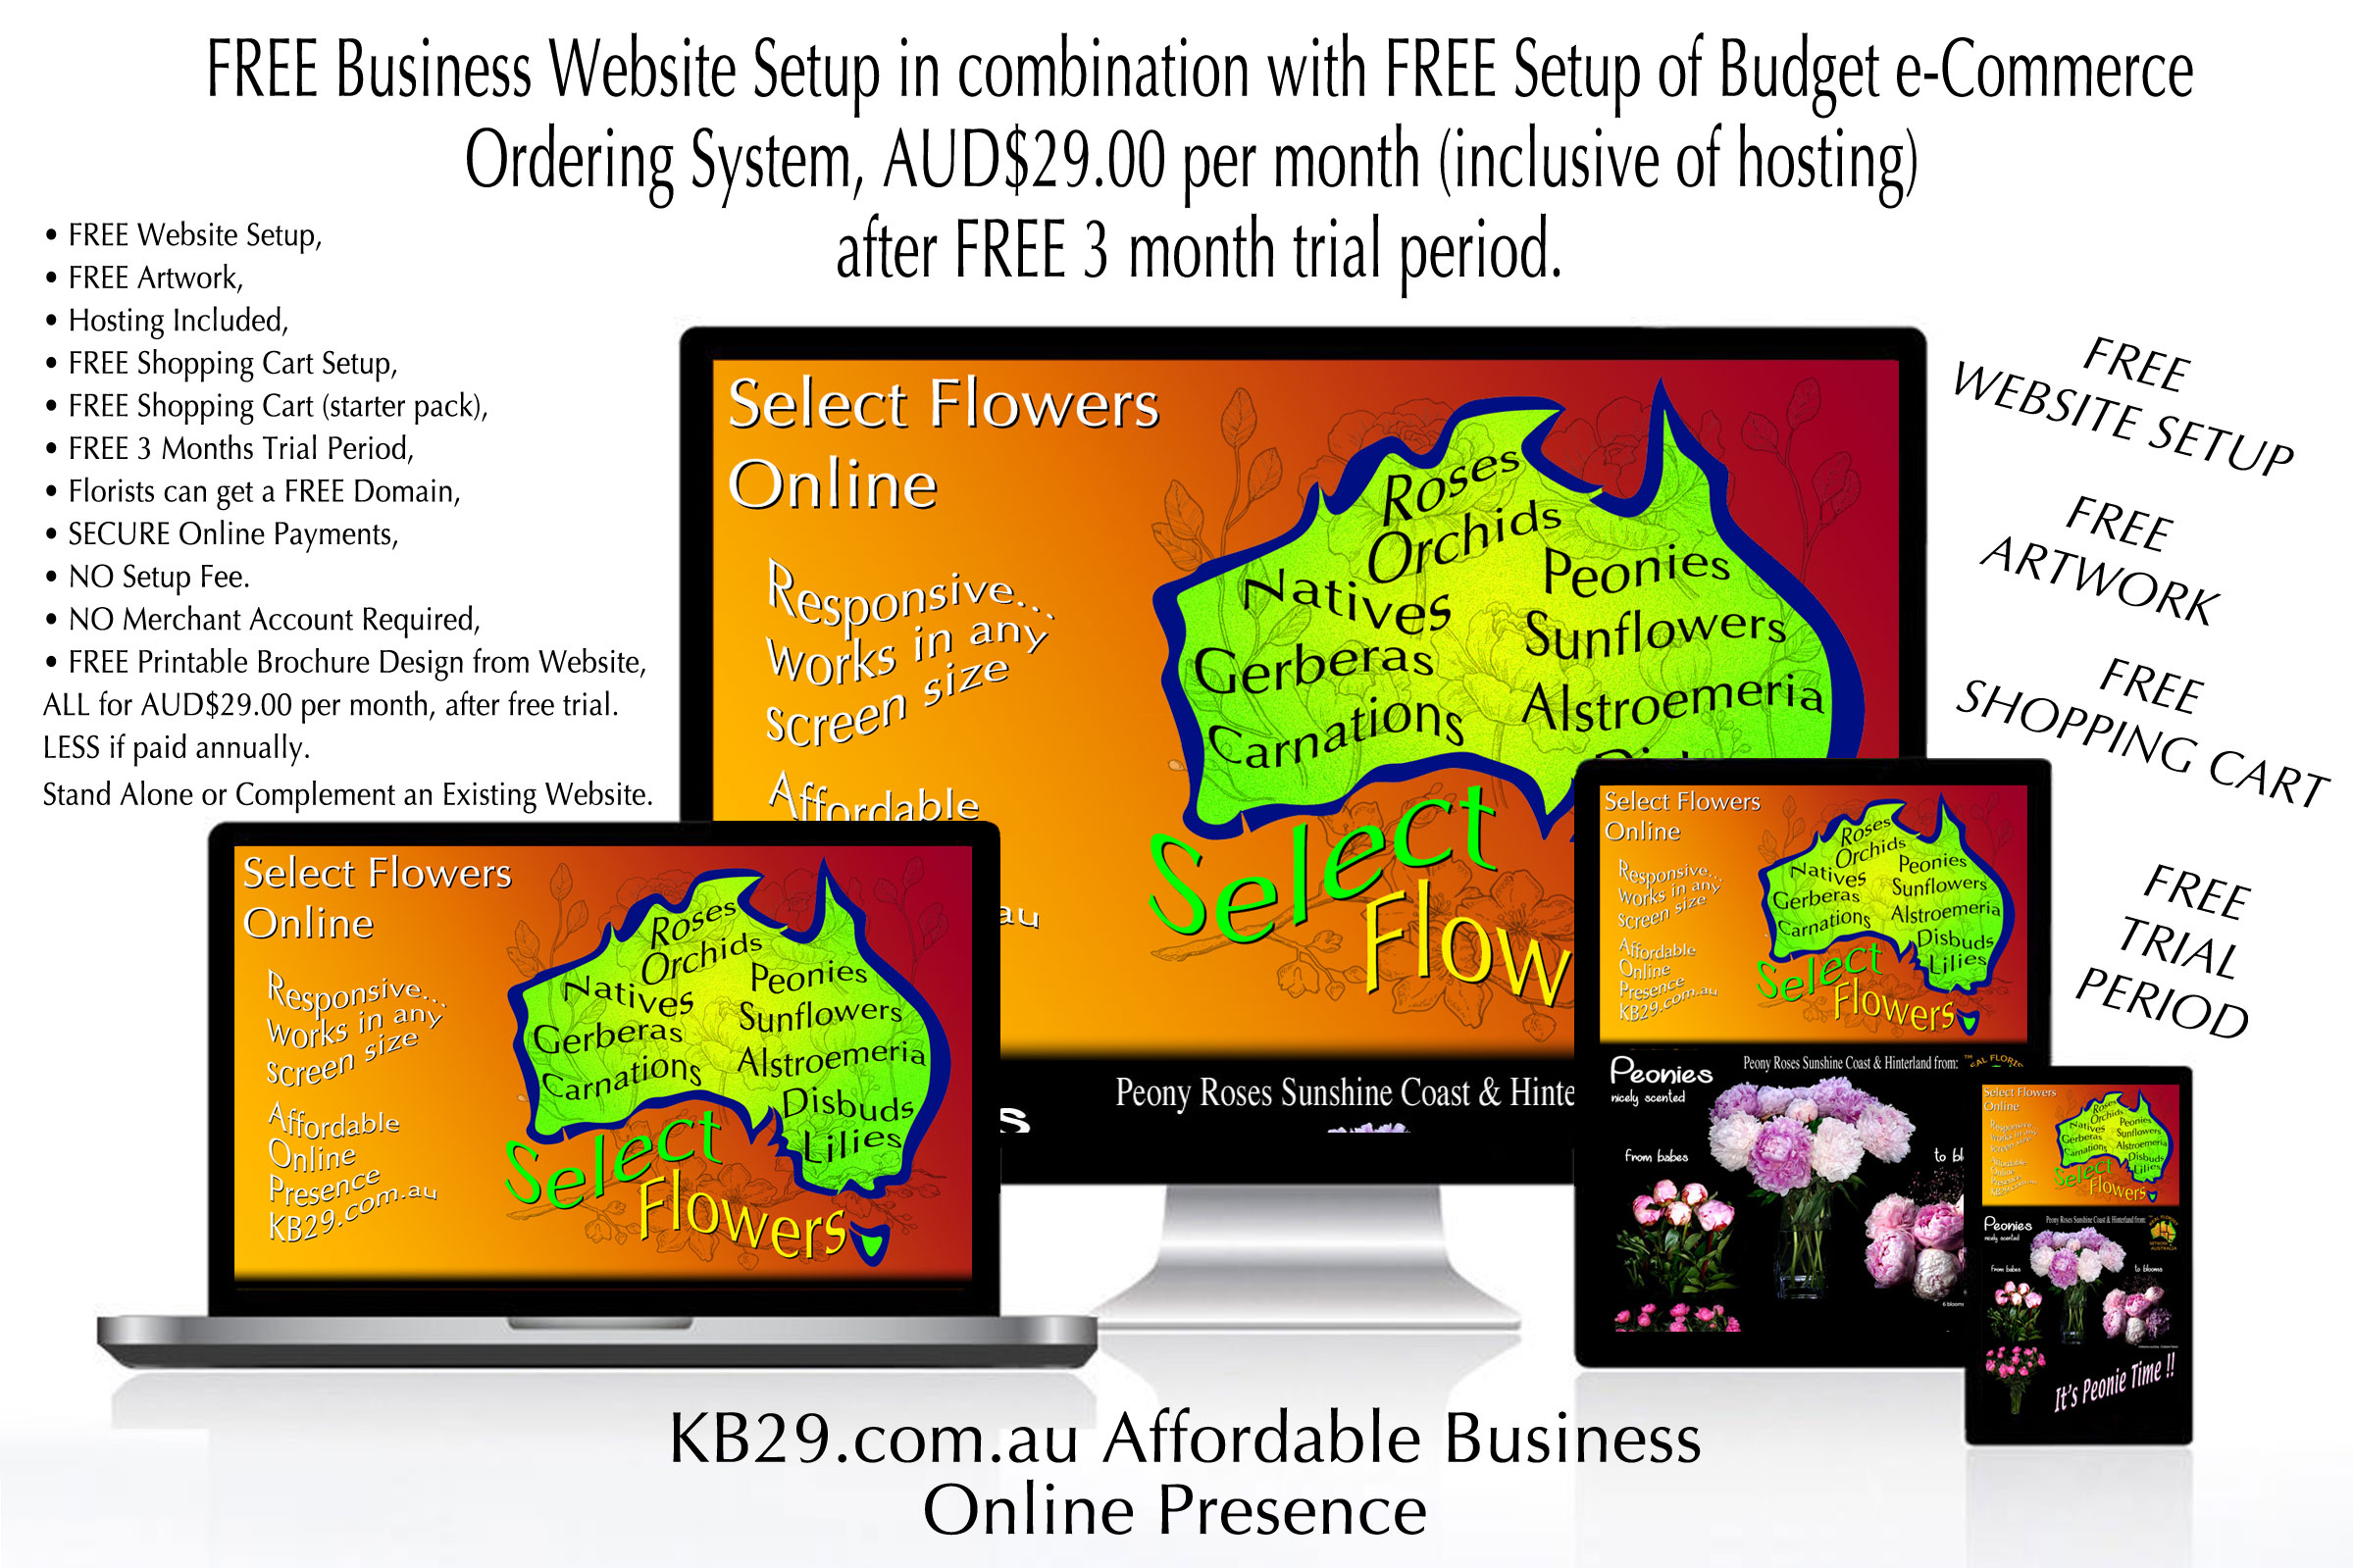 FREE WEBSITE and ONLINE SHOPPING SETUPS with KB29